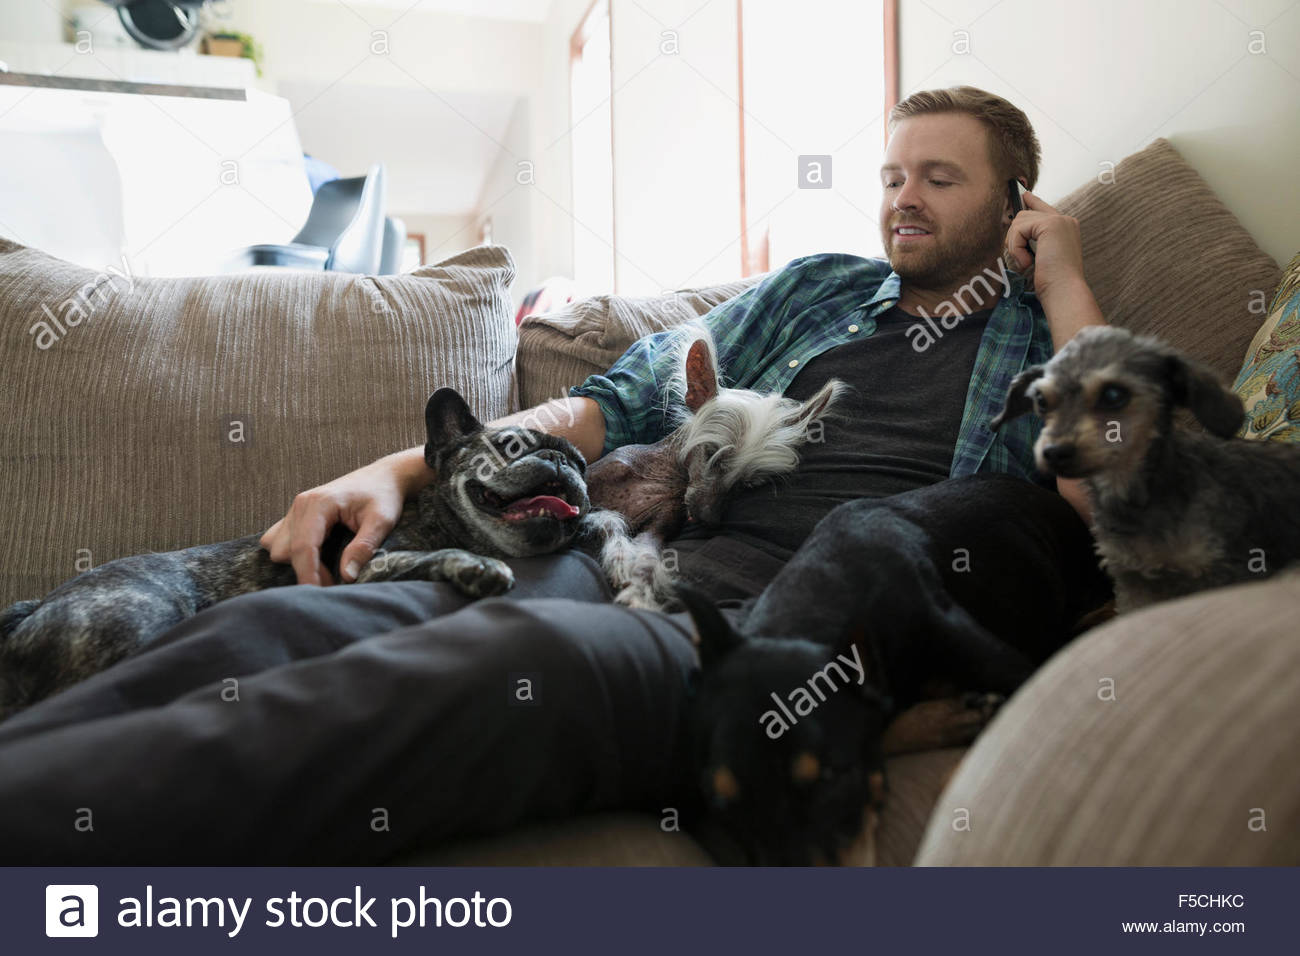 Man cuddling with four dogs talking cell phone - Stock Image